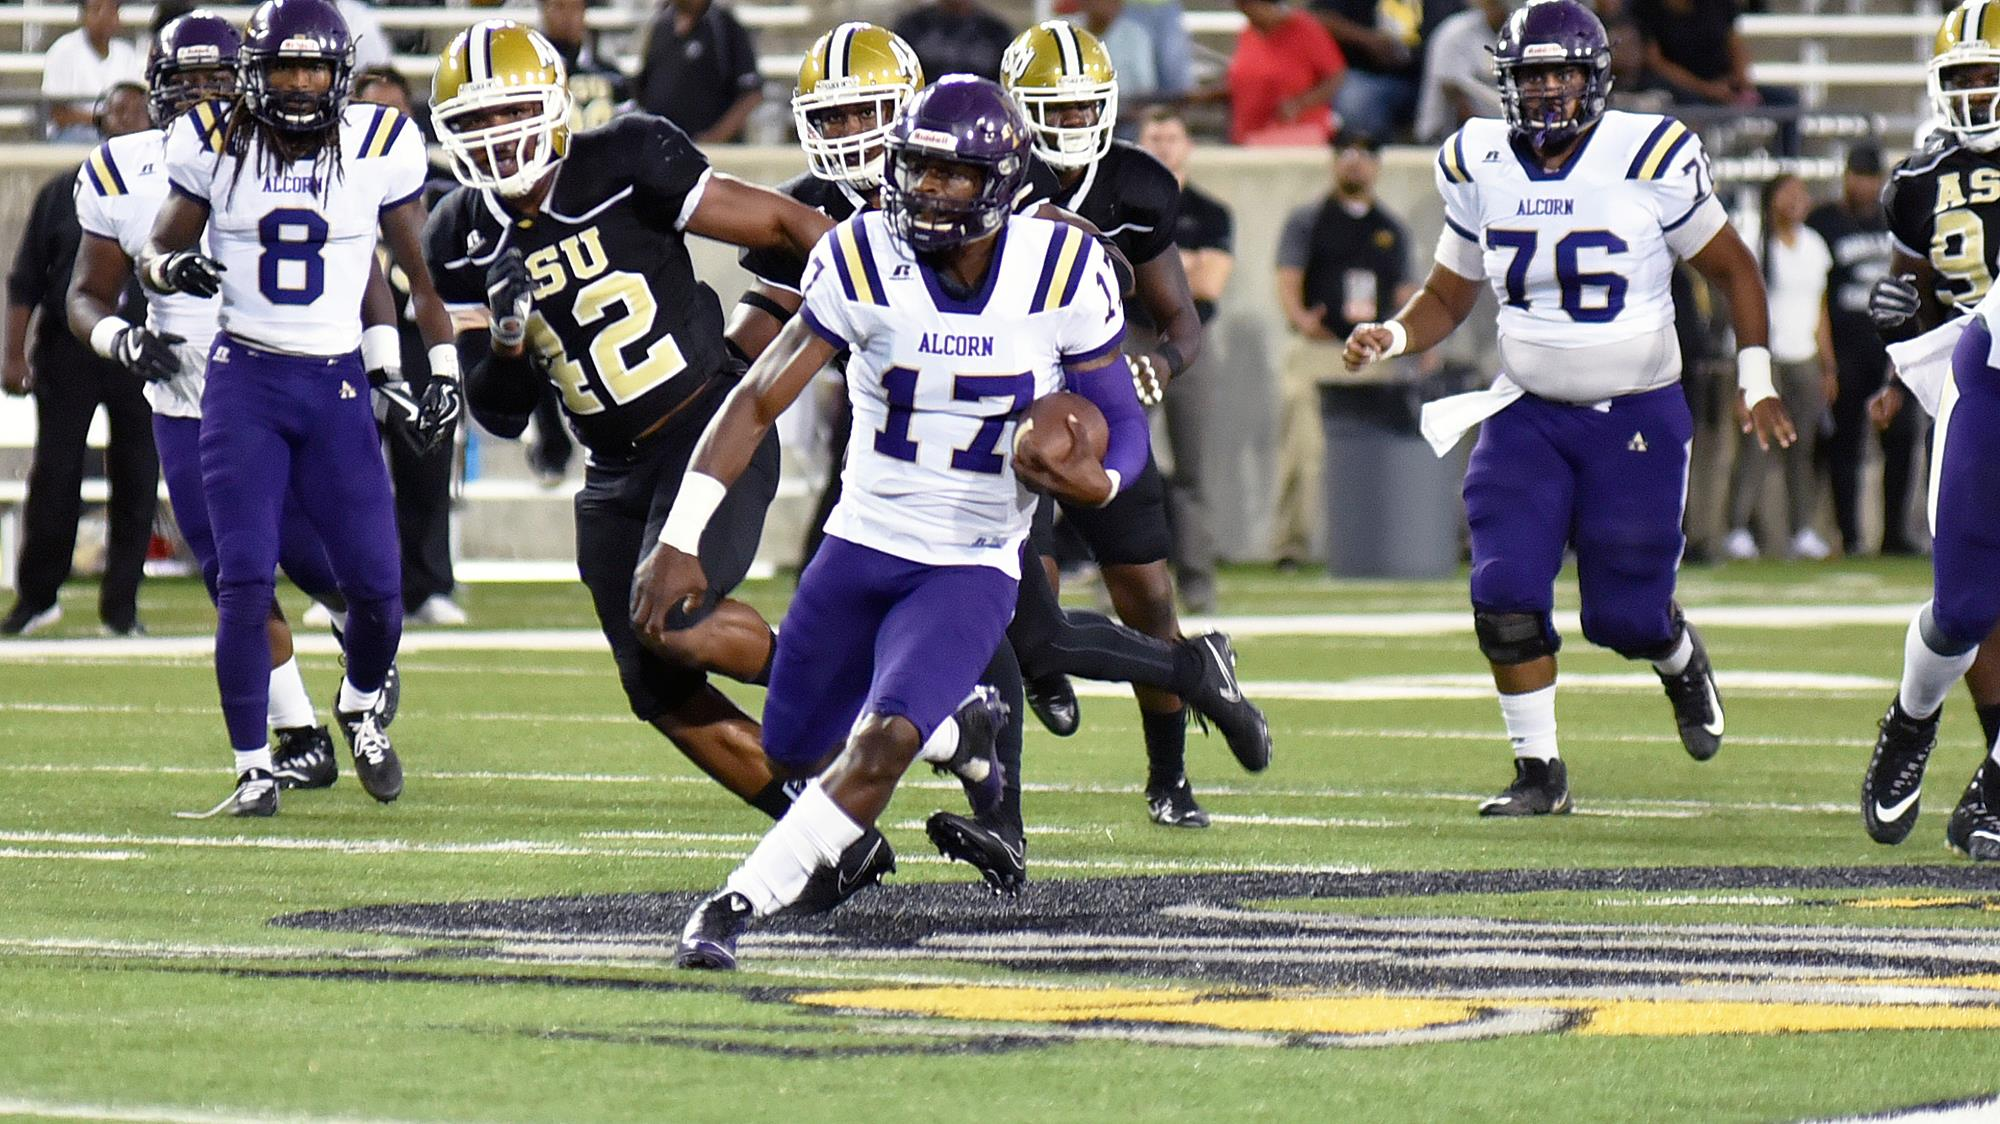 Dominant First Half Lifts Alcorn to 24-10 Win over Alabama State